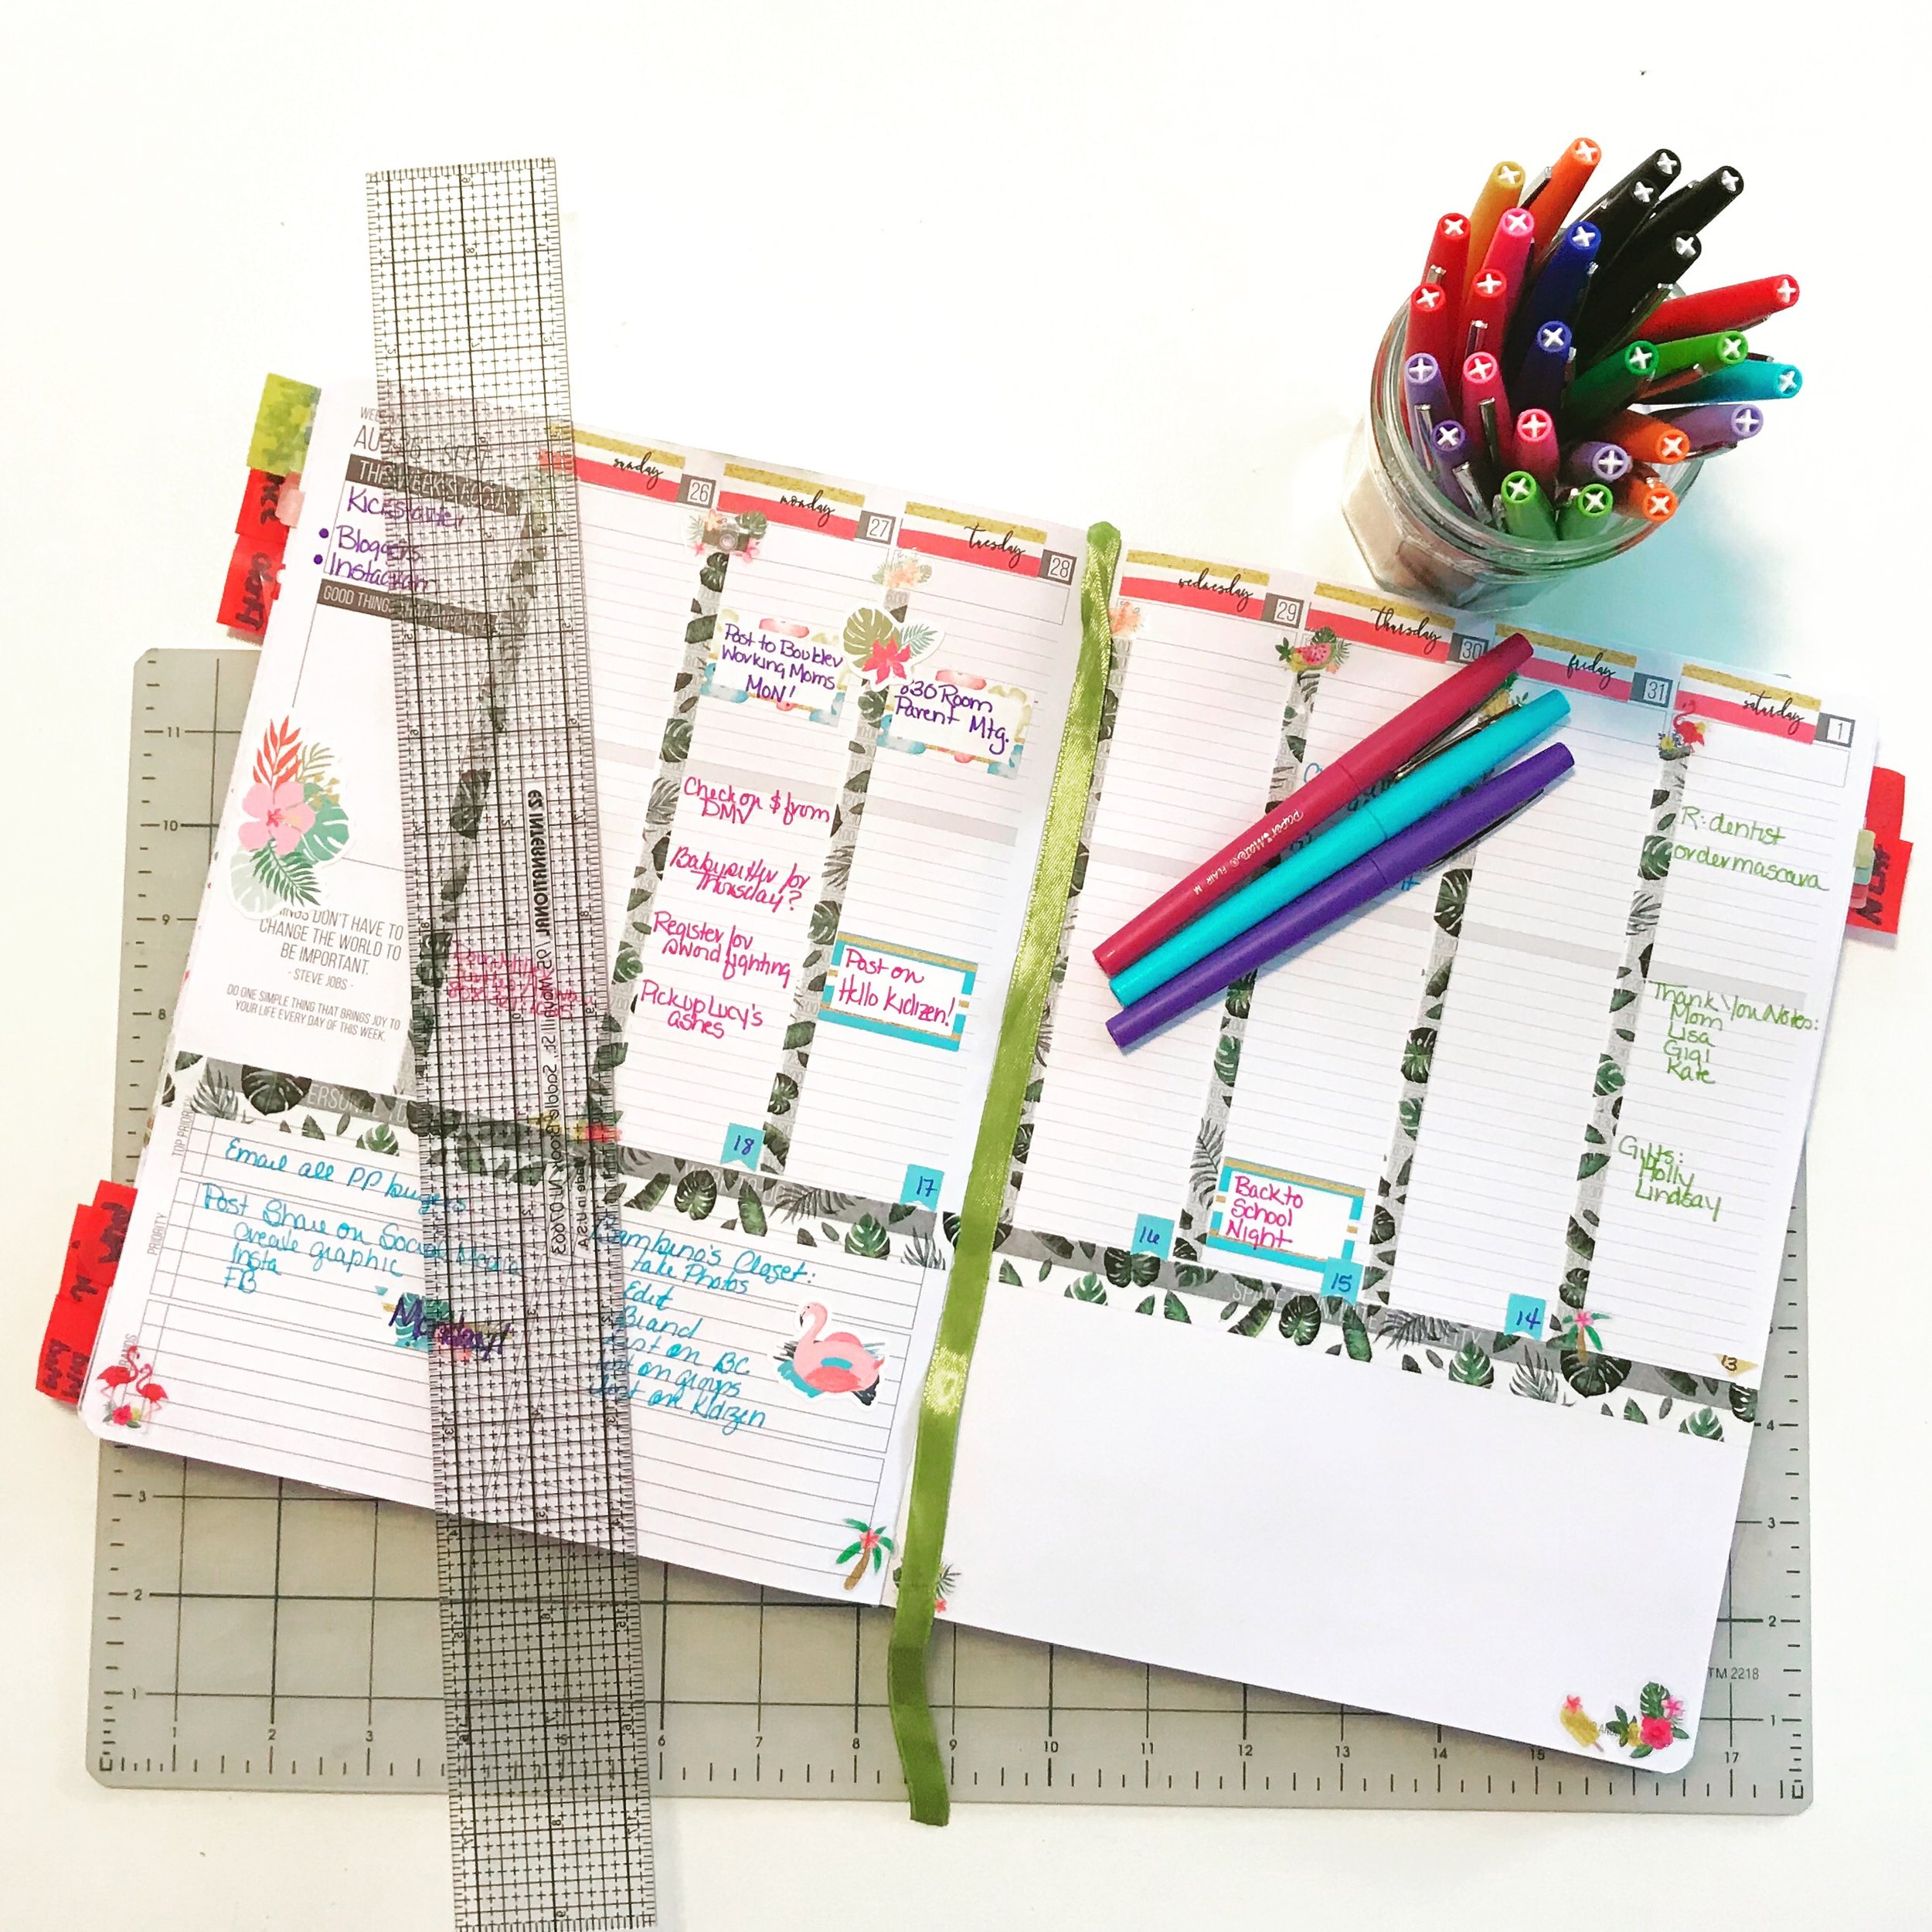 The best pens and markers for planners. Decorating ideas, printables, spread examples, and washi tape.